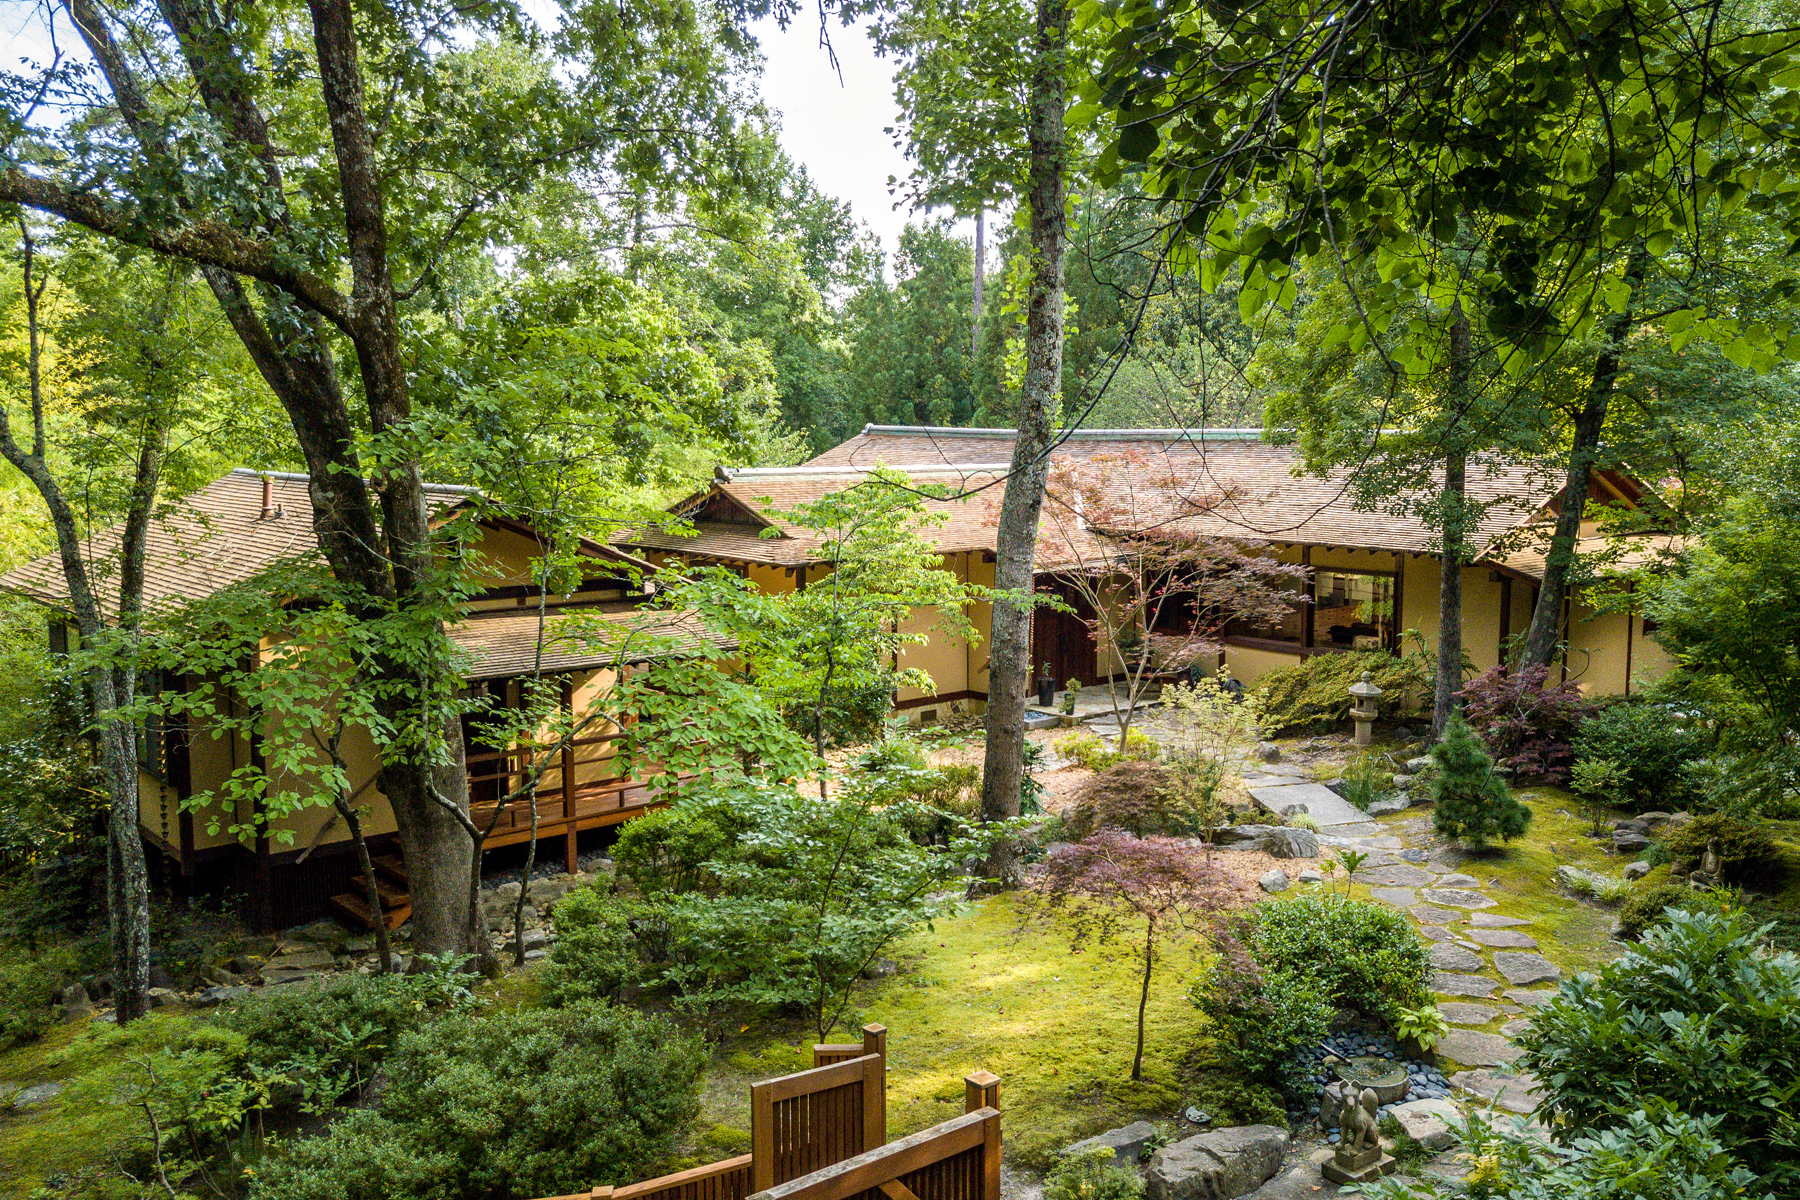 獨棟家庭住宅 為 出售 在 Unique Japanese style Zen Buckhead Retreat 4010 Beechwood Drive NW Atlanta, 喬治亞州 30327 美國